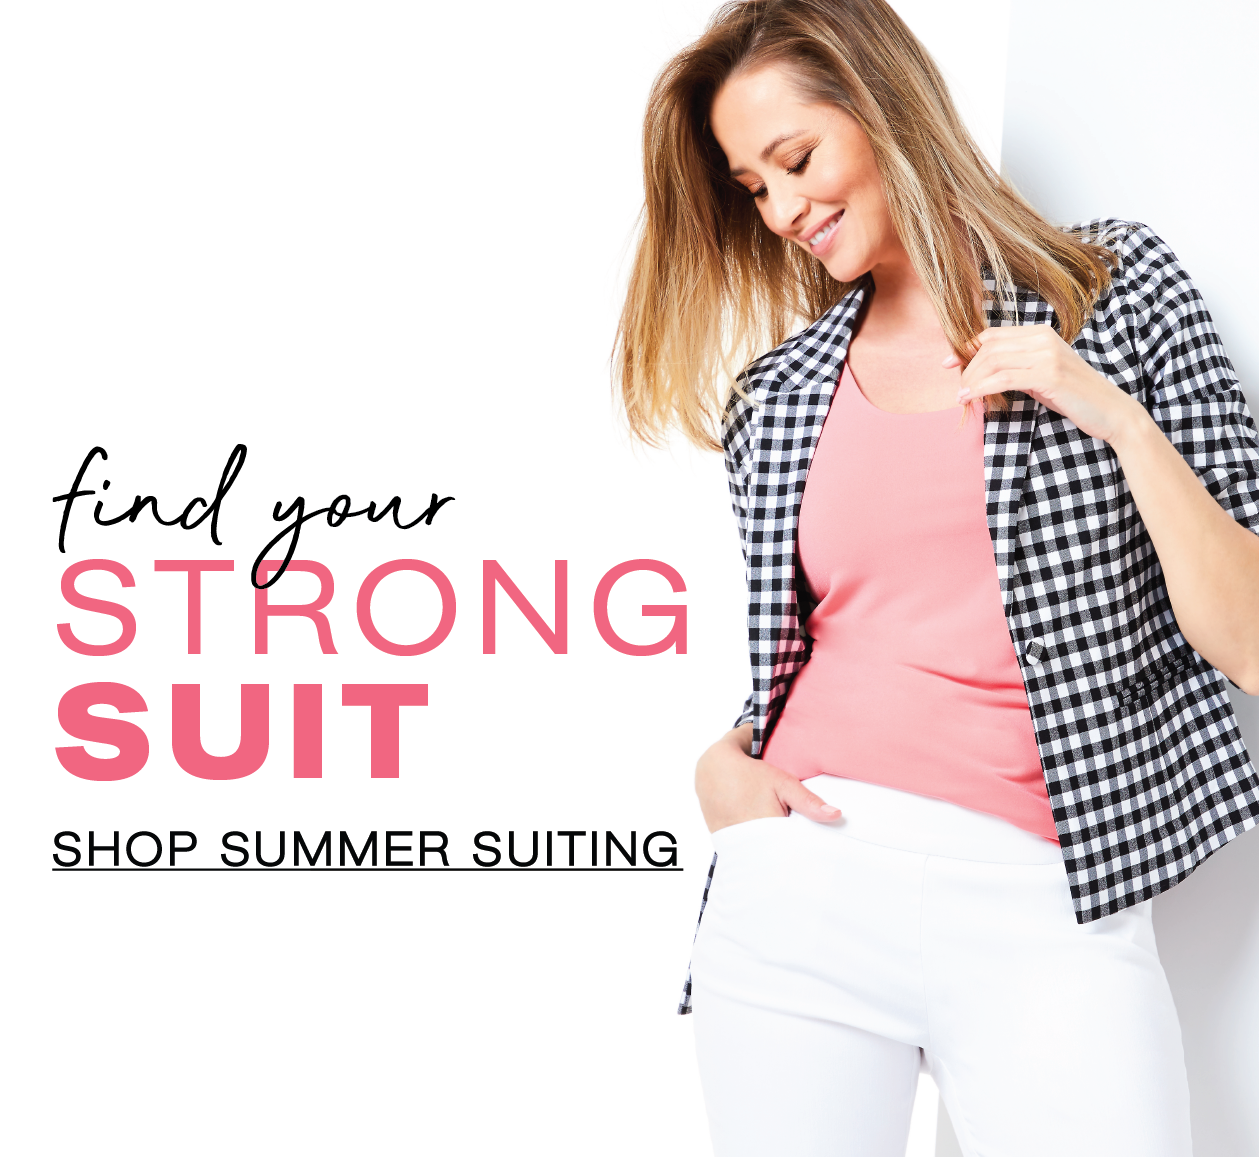 Find your strong Suit - Shop Summer Suiting.